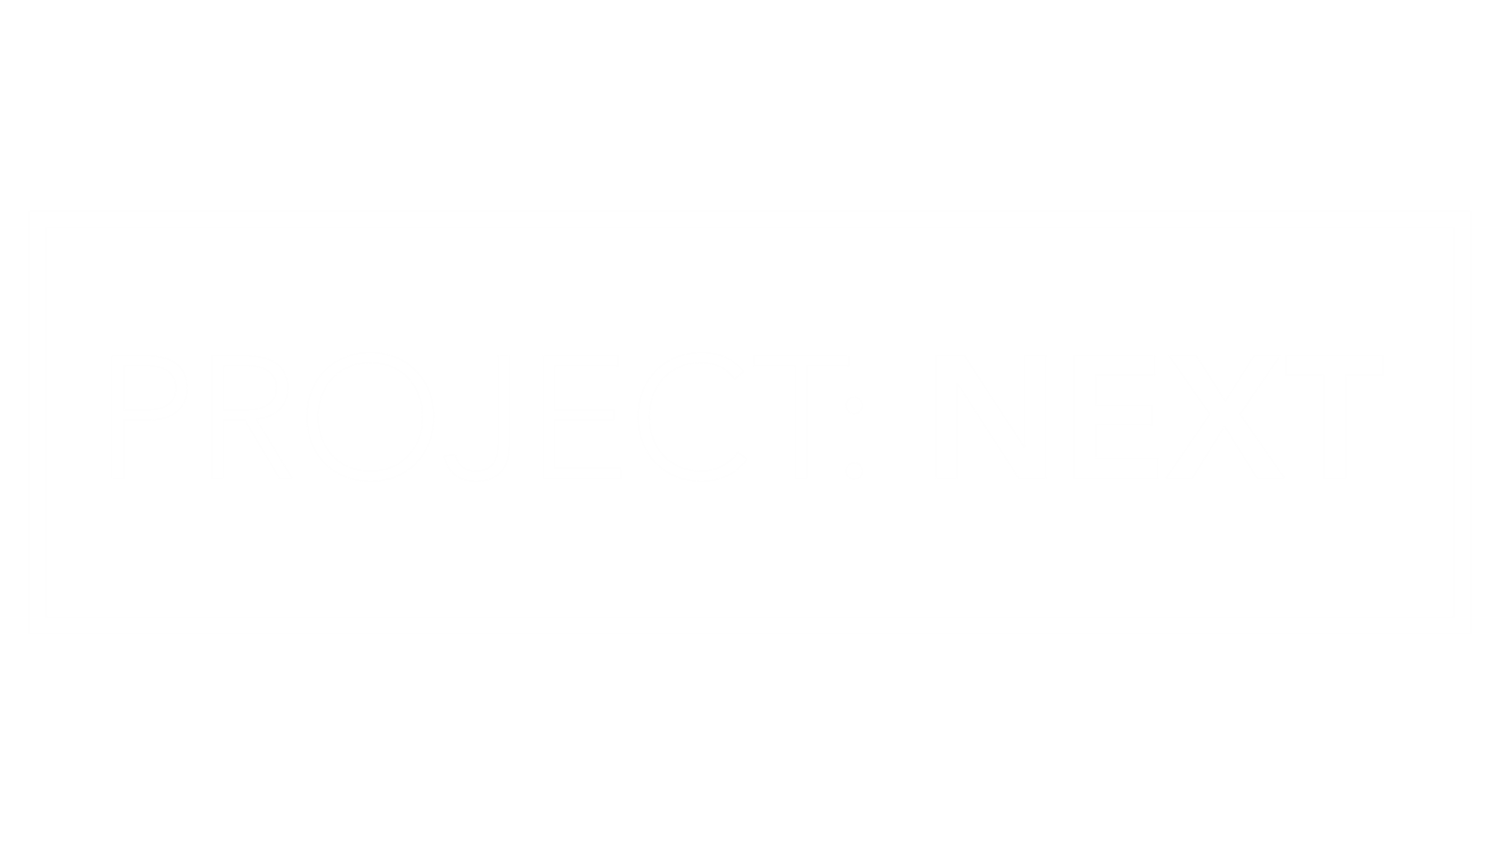 Project: Next